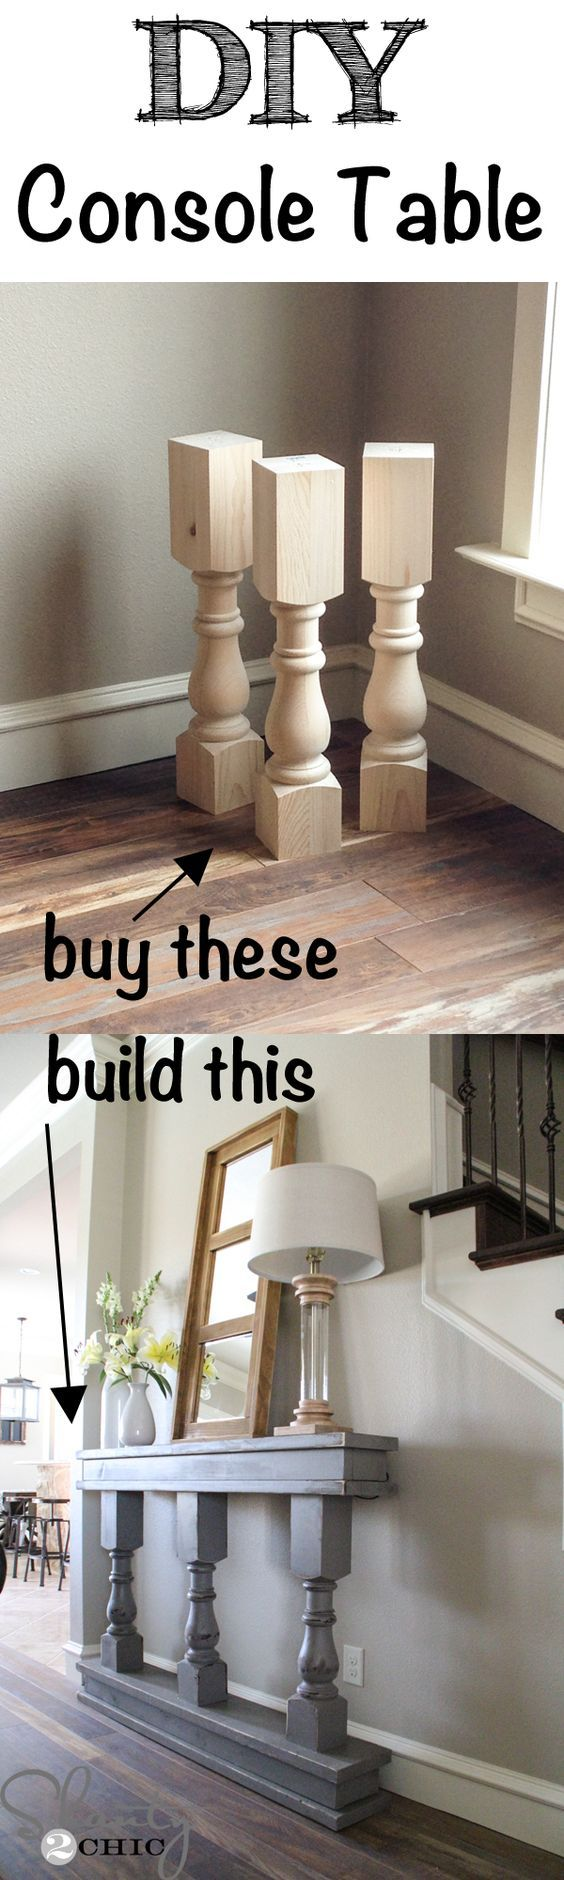 Easy DIY Console Table - very cool, especially for a narrow entry way